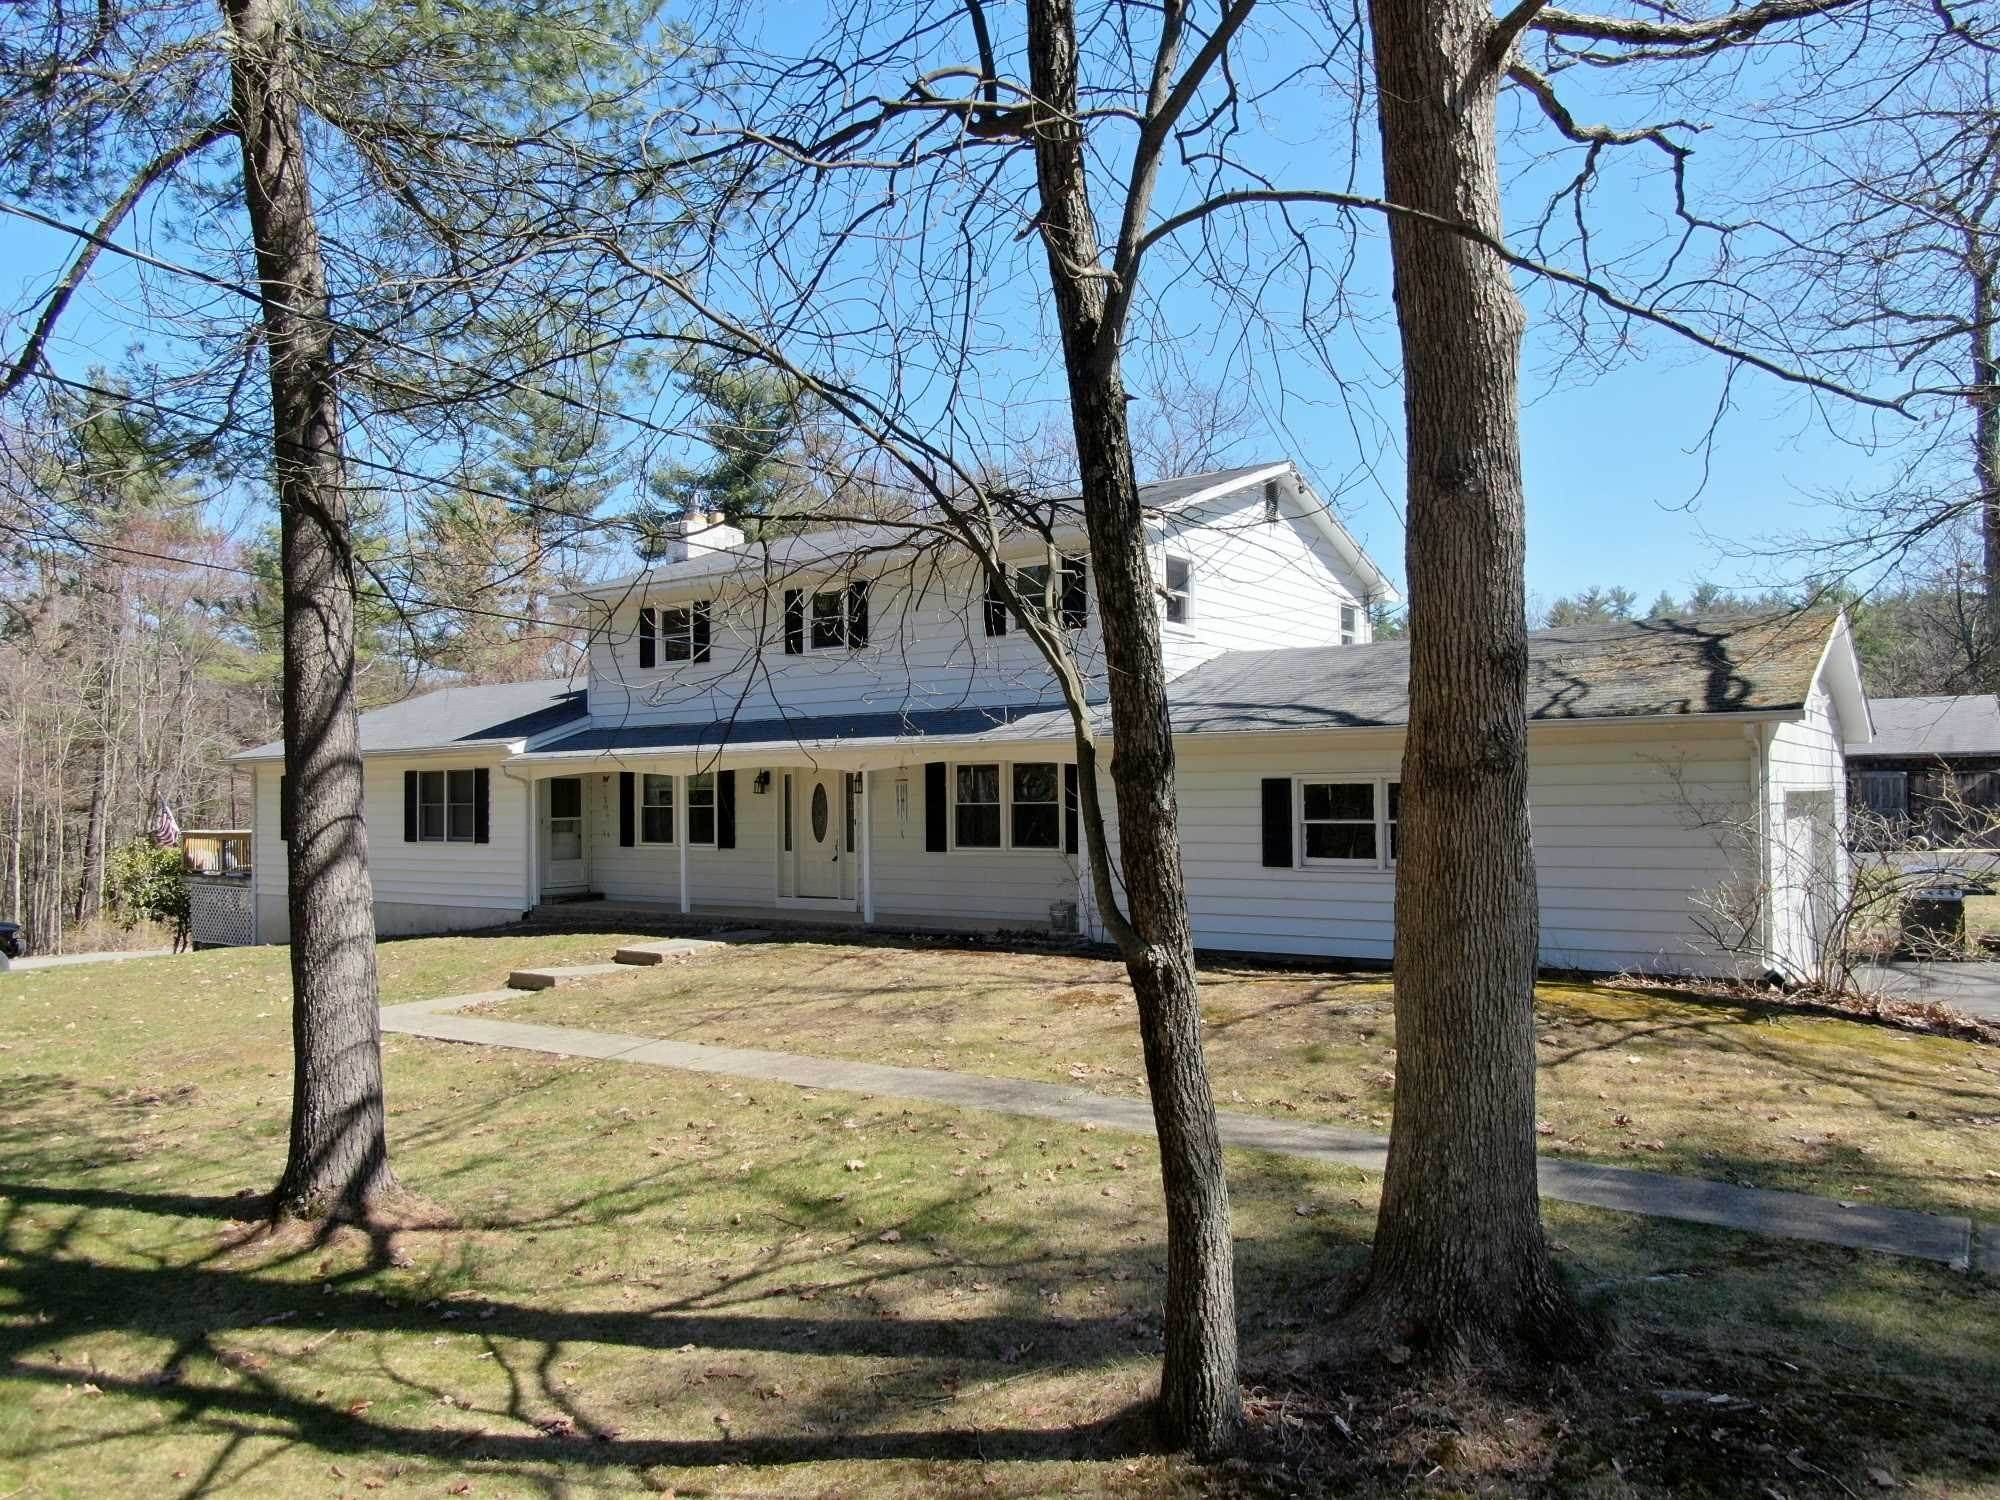 Single Family Homes for Sale at 78 SCHULTZ HILL ROAD Clinton, New York 12580 United States